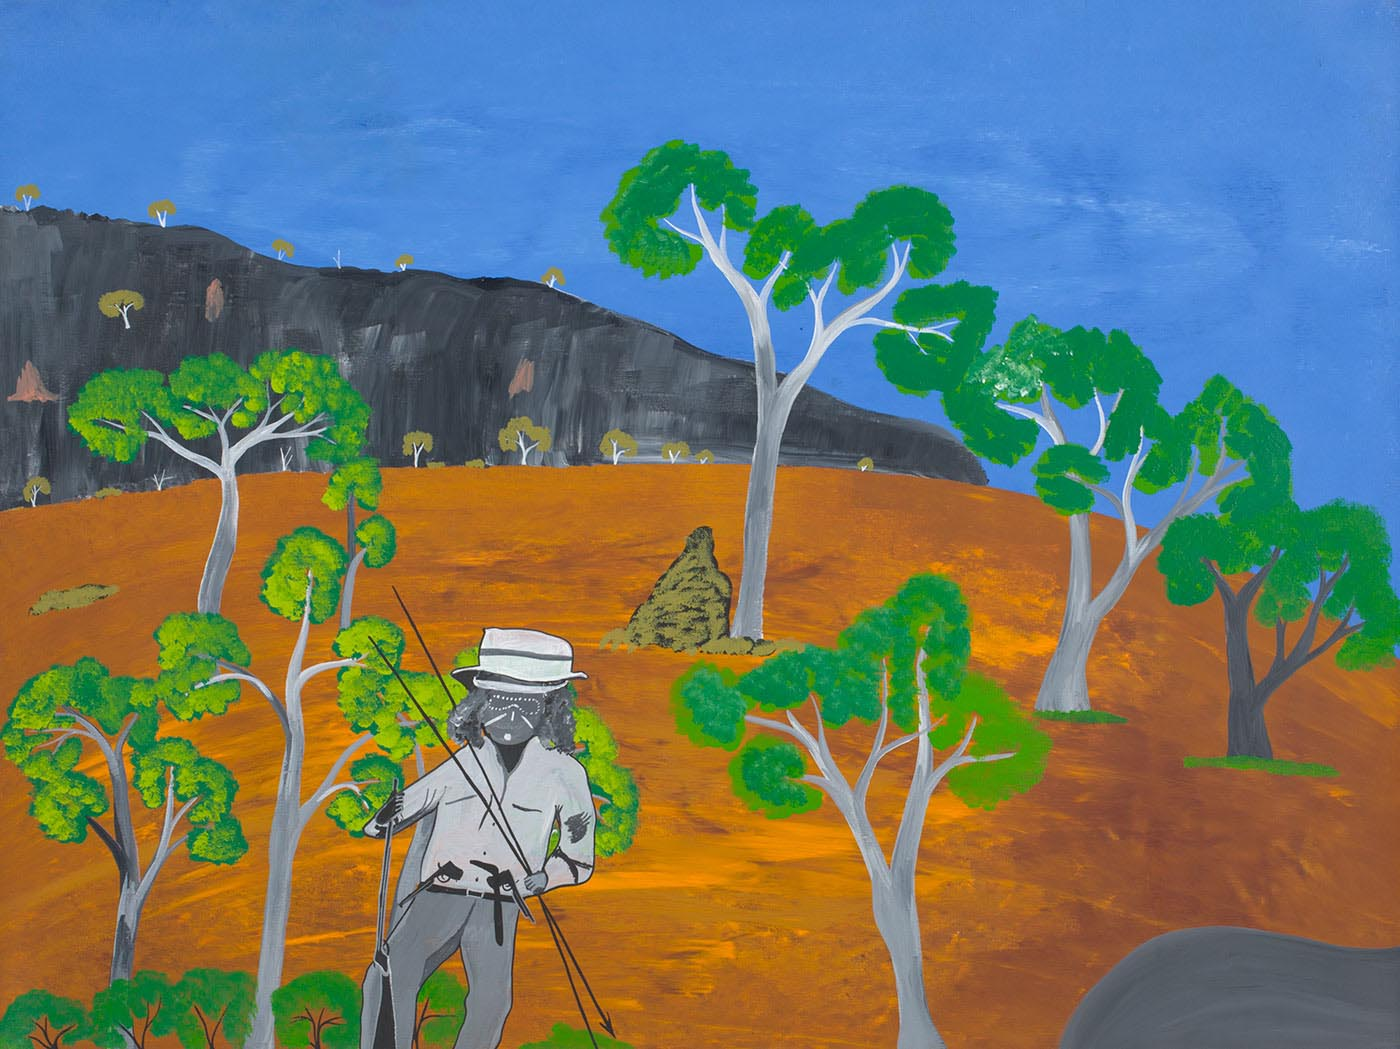 An acrylic painting on canvas depicting an Aboriginal man standing amidst a landscape. The man is wearing a white, grey and black brimmed hat, with a light grey shirt and dark grey pants. He is also holding spears in both hands. The landscape features a blue sky and grey black mountains with trees in the background. The foreground consists of orange brown grassland with trees that are green, grey and white in colour. Also to the front right side of the painting is a grey rock.